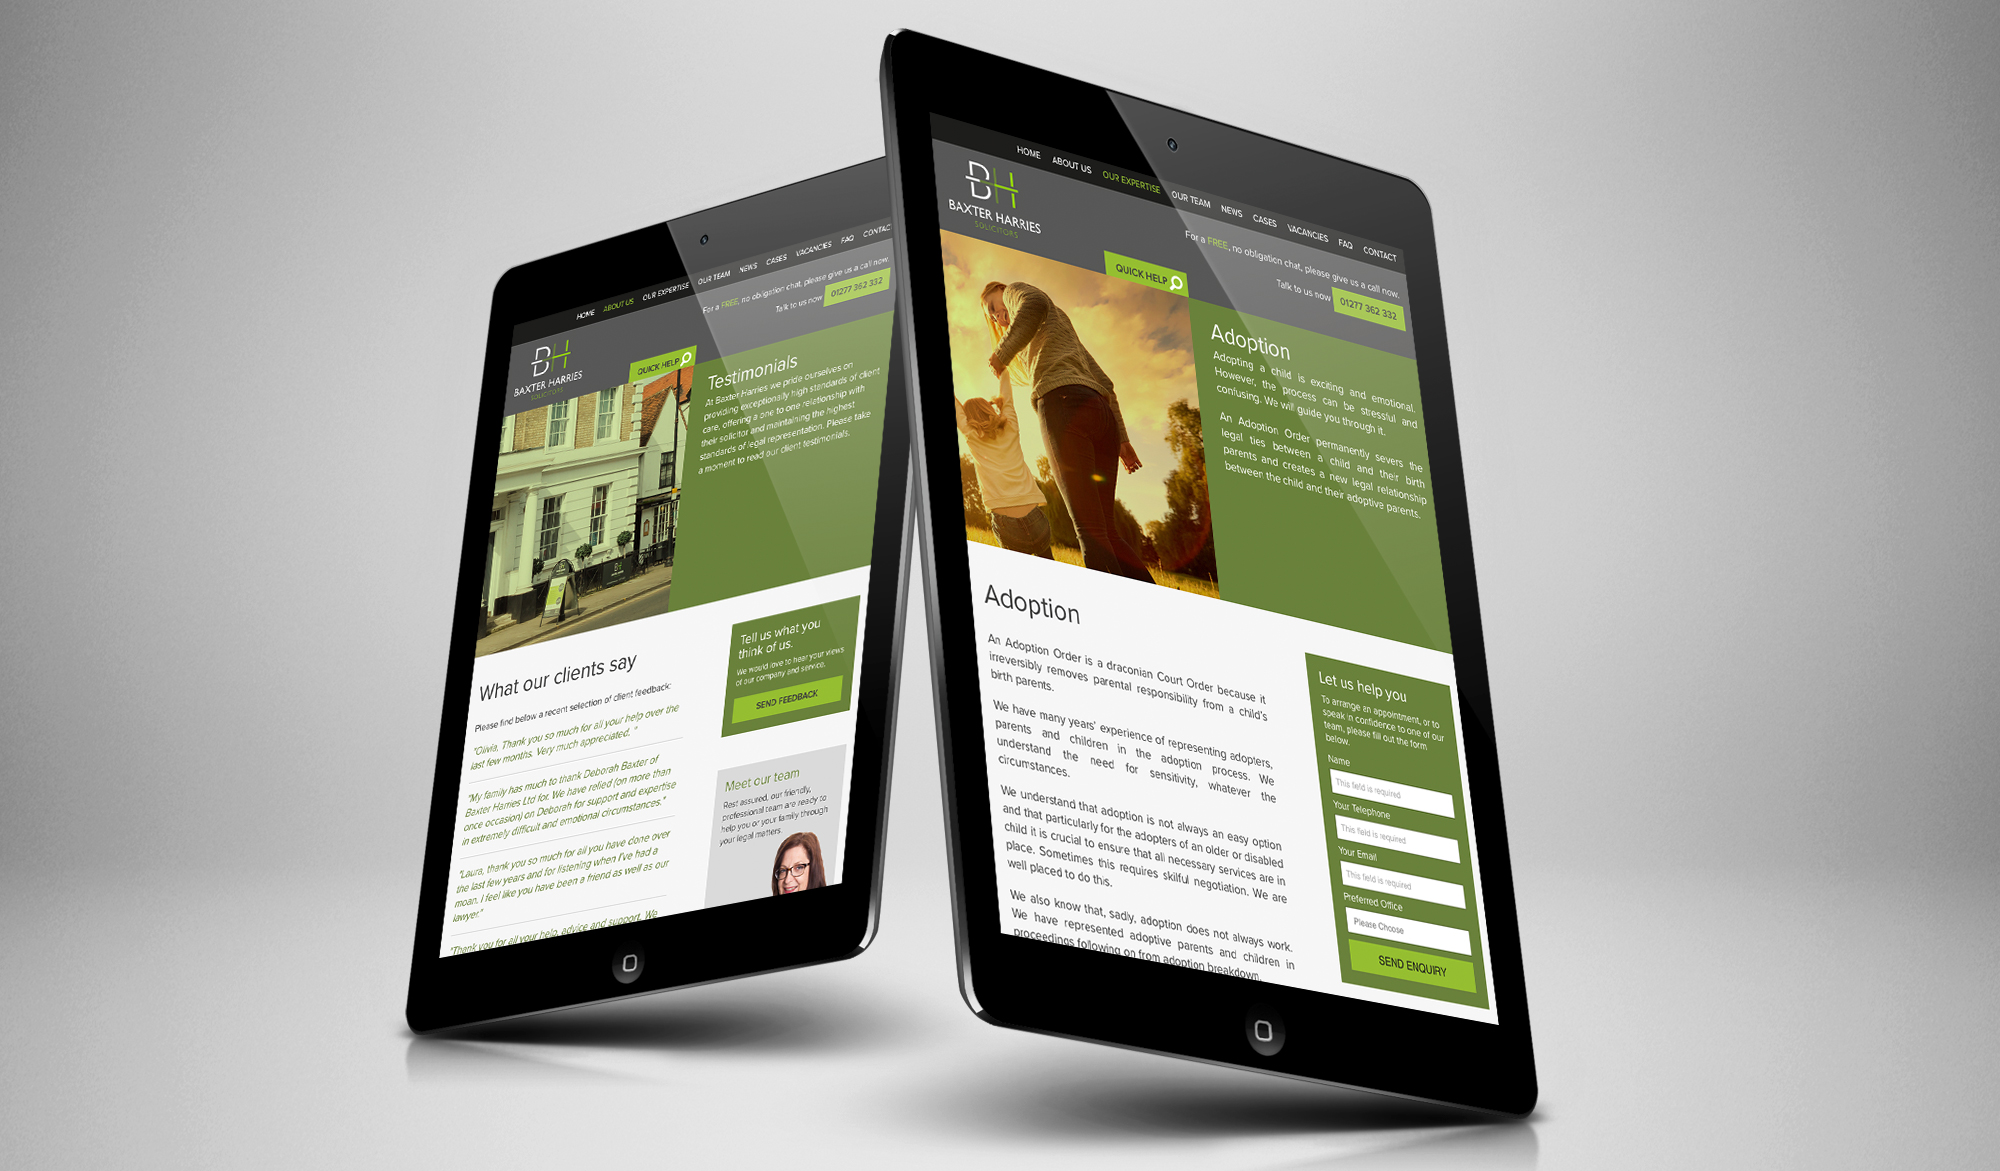 Baxter Harries Solicitors tablet